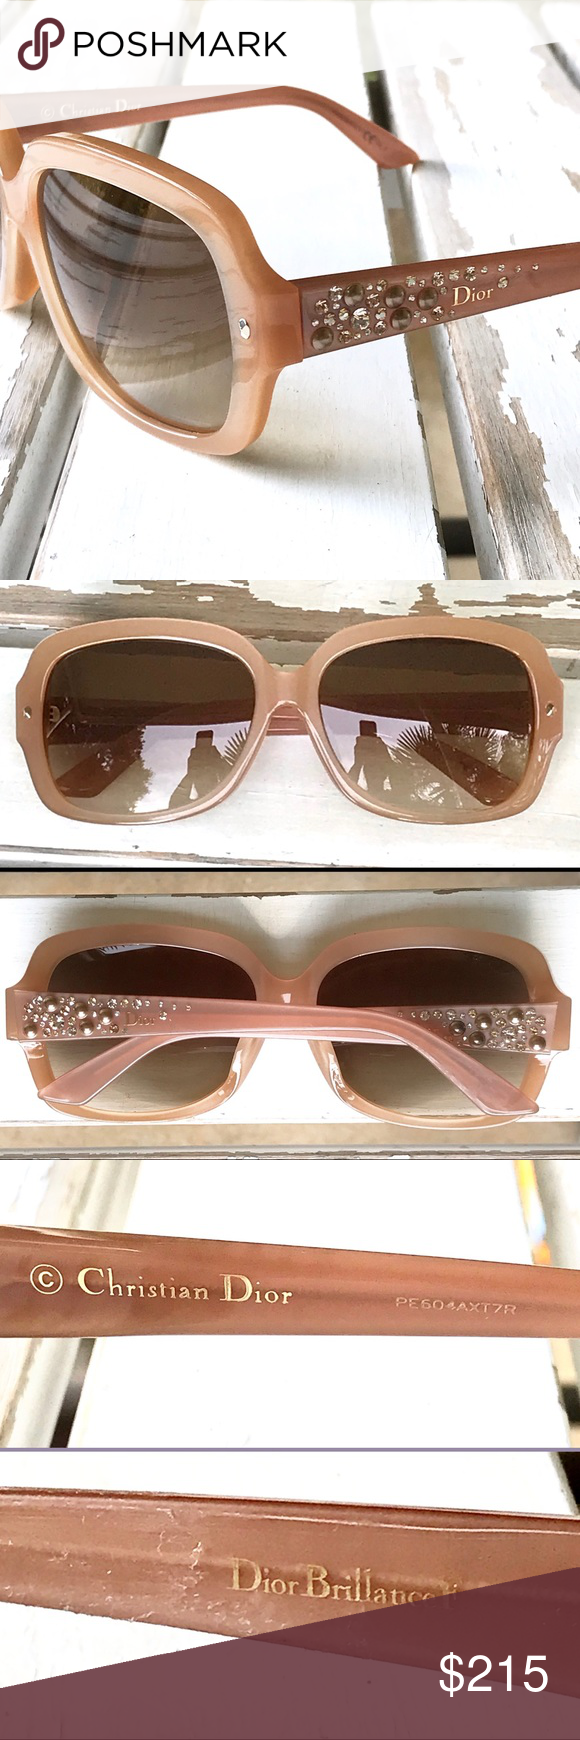 3ec193628f NWT - DIOR Brilliance F Sunglasses Authentic CHRISTIAN DIOR Sunglasses •  Style  DIOR BRILLIANCE F • Color  6ZF JD - Beige Pink Opal with Brown  Gradient Lens ...